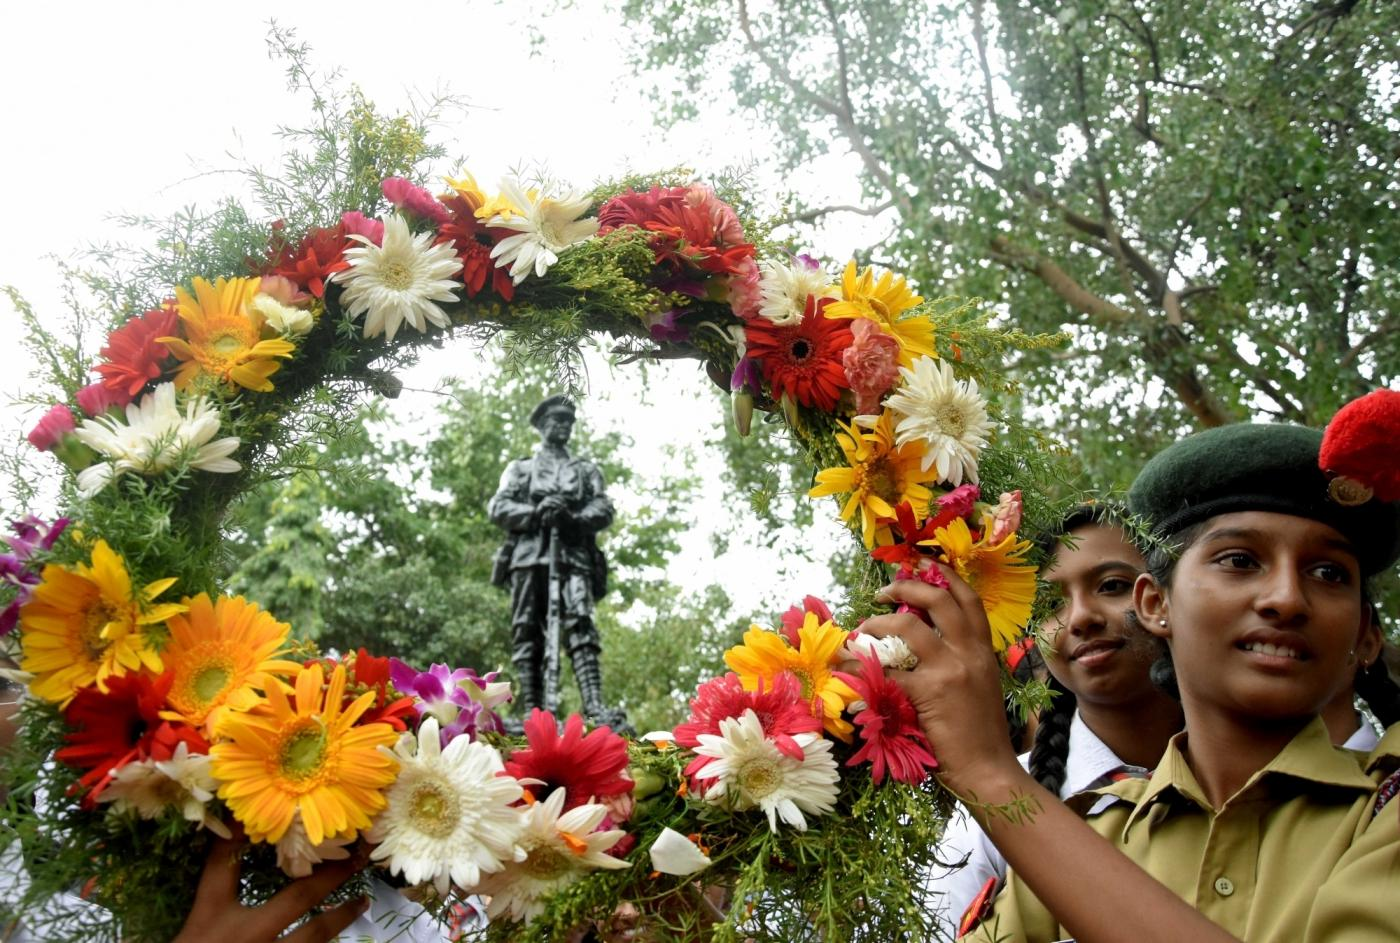 Bengaluru: School students pays homage to the martyrs on the occasion of Kargil Vijay Diwas at National Military Memorial Park, in Bengaluru on July 26, 2018. (Photo: IANS) by .